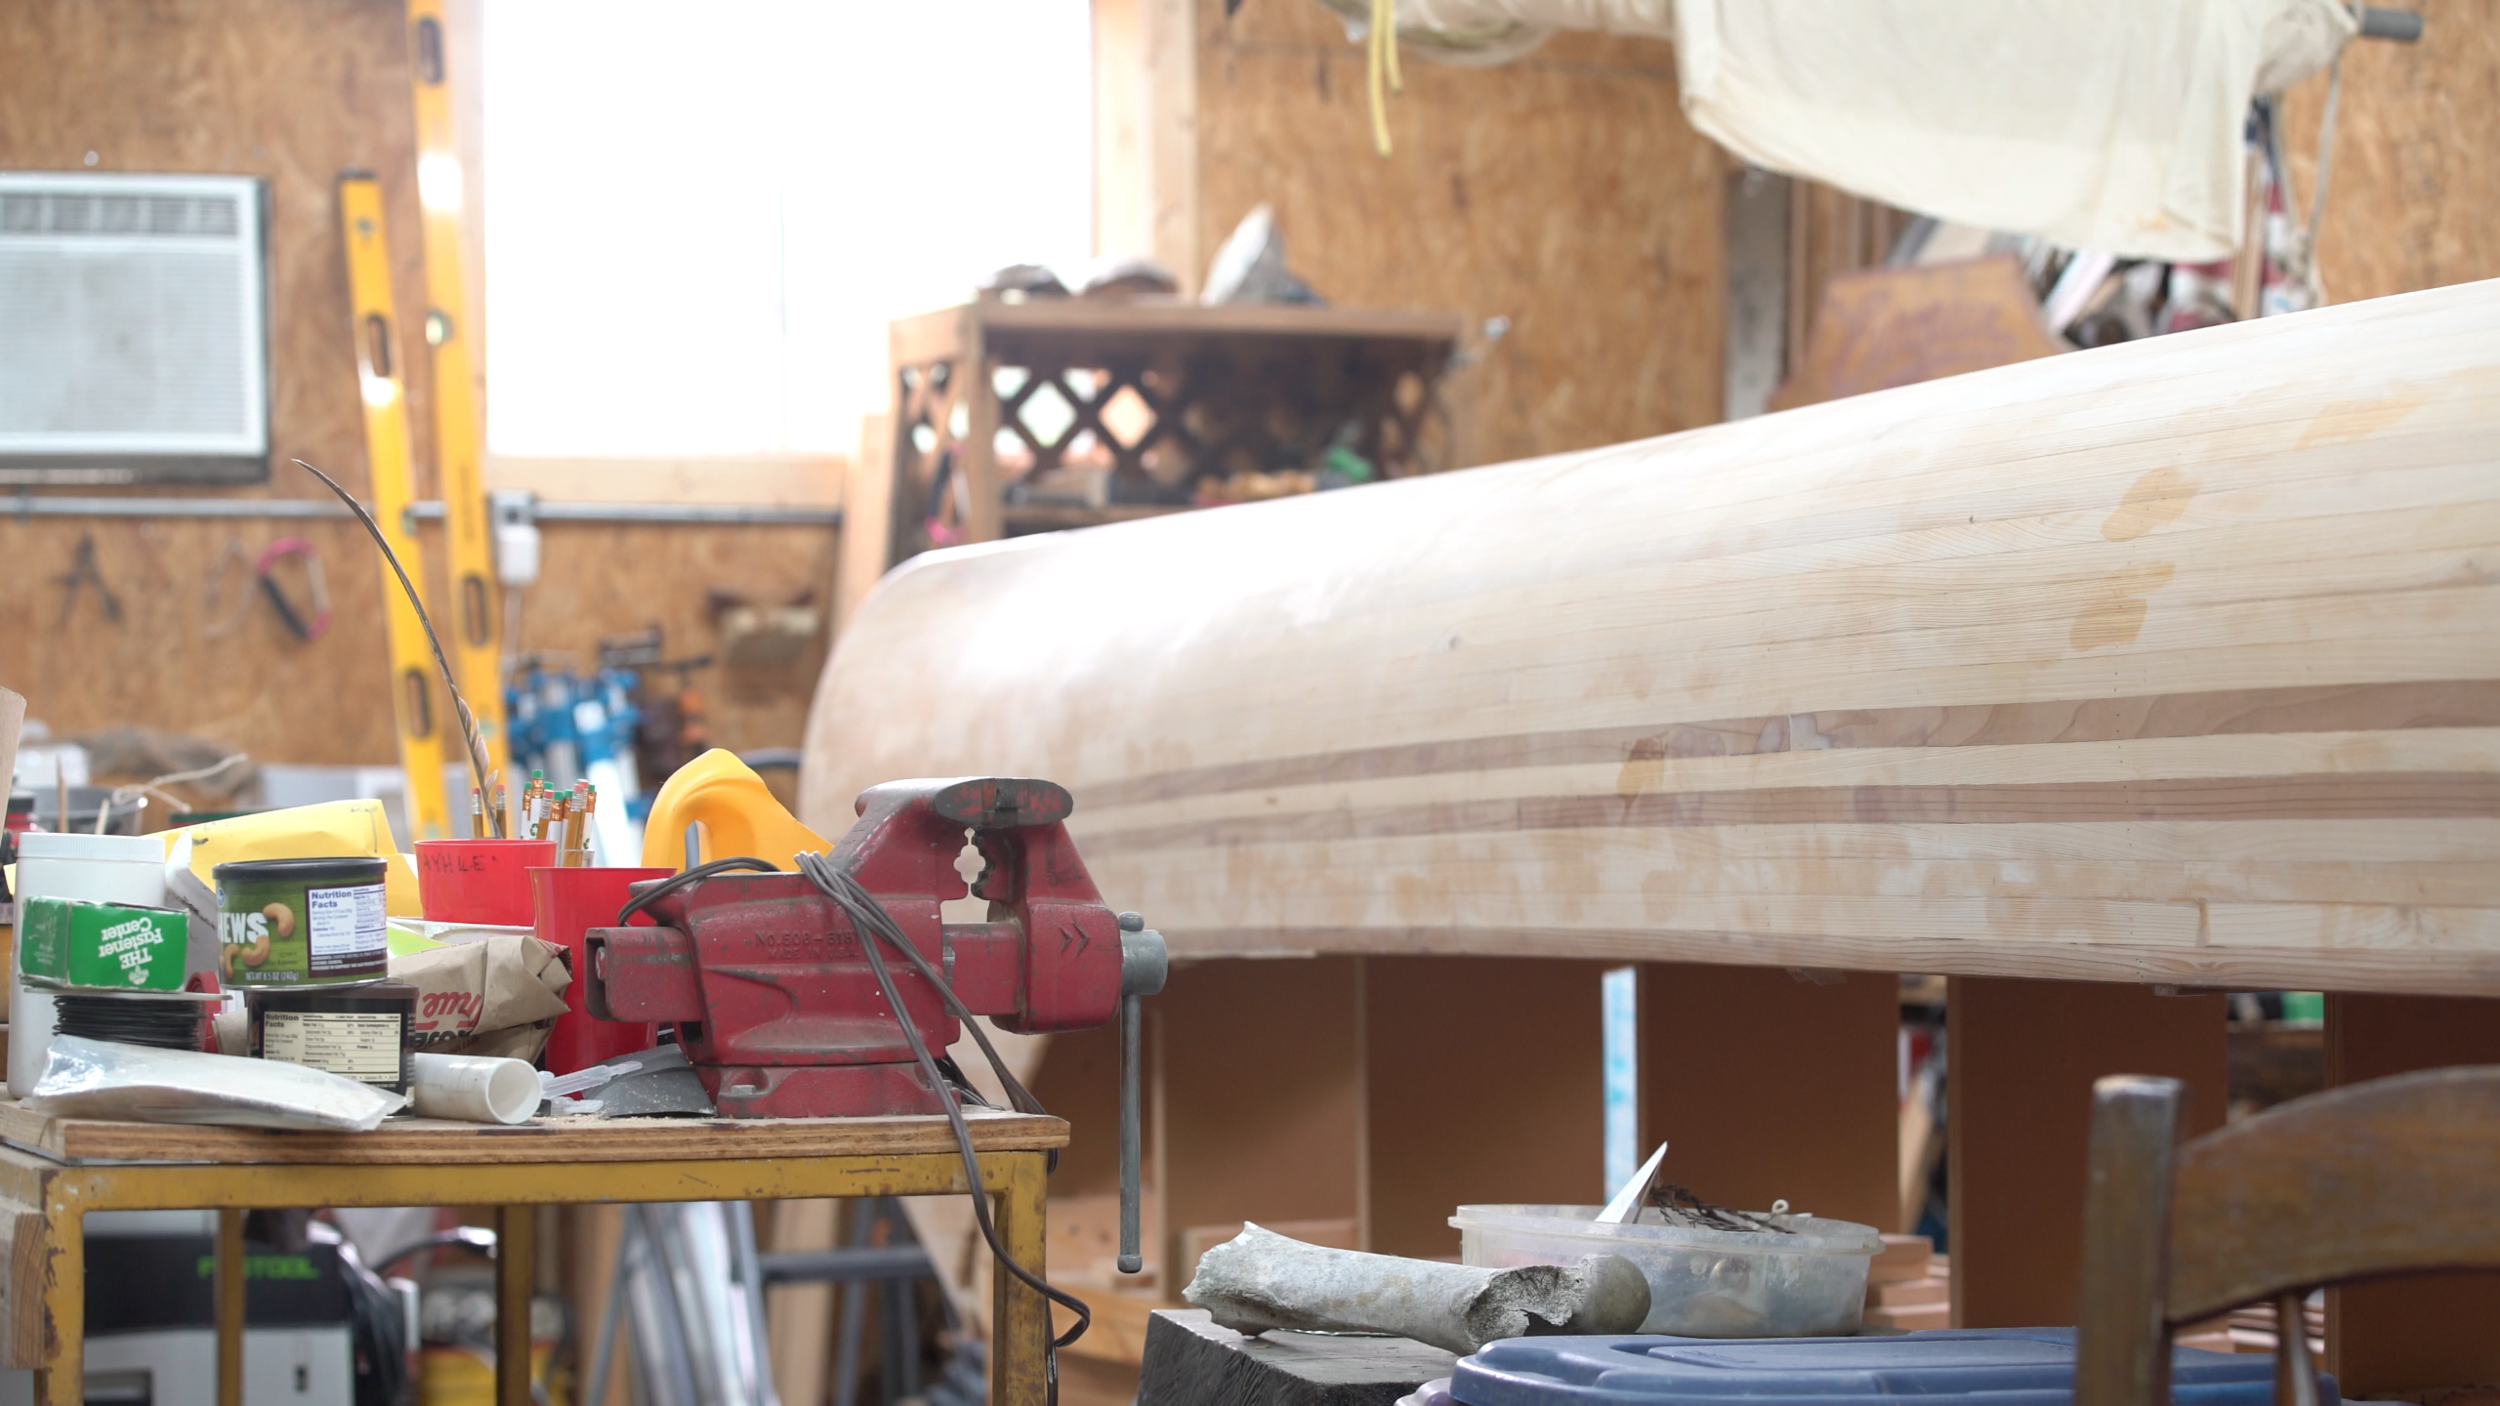 An unfinished voyageur canoe in the shop at Quapaw Canoe Company. Built in the style of Ted Moores strip construction , these boats are nearly 30 feet long, weigh nearly 400 pounds empty, and can carry up to 8 passengers fully loaded with personal and expedition gear (in the author's experience). Photo Credit: Chris Battaglia.